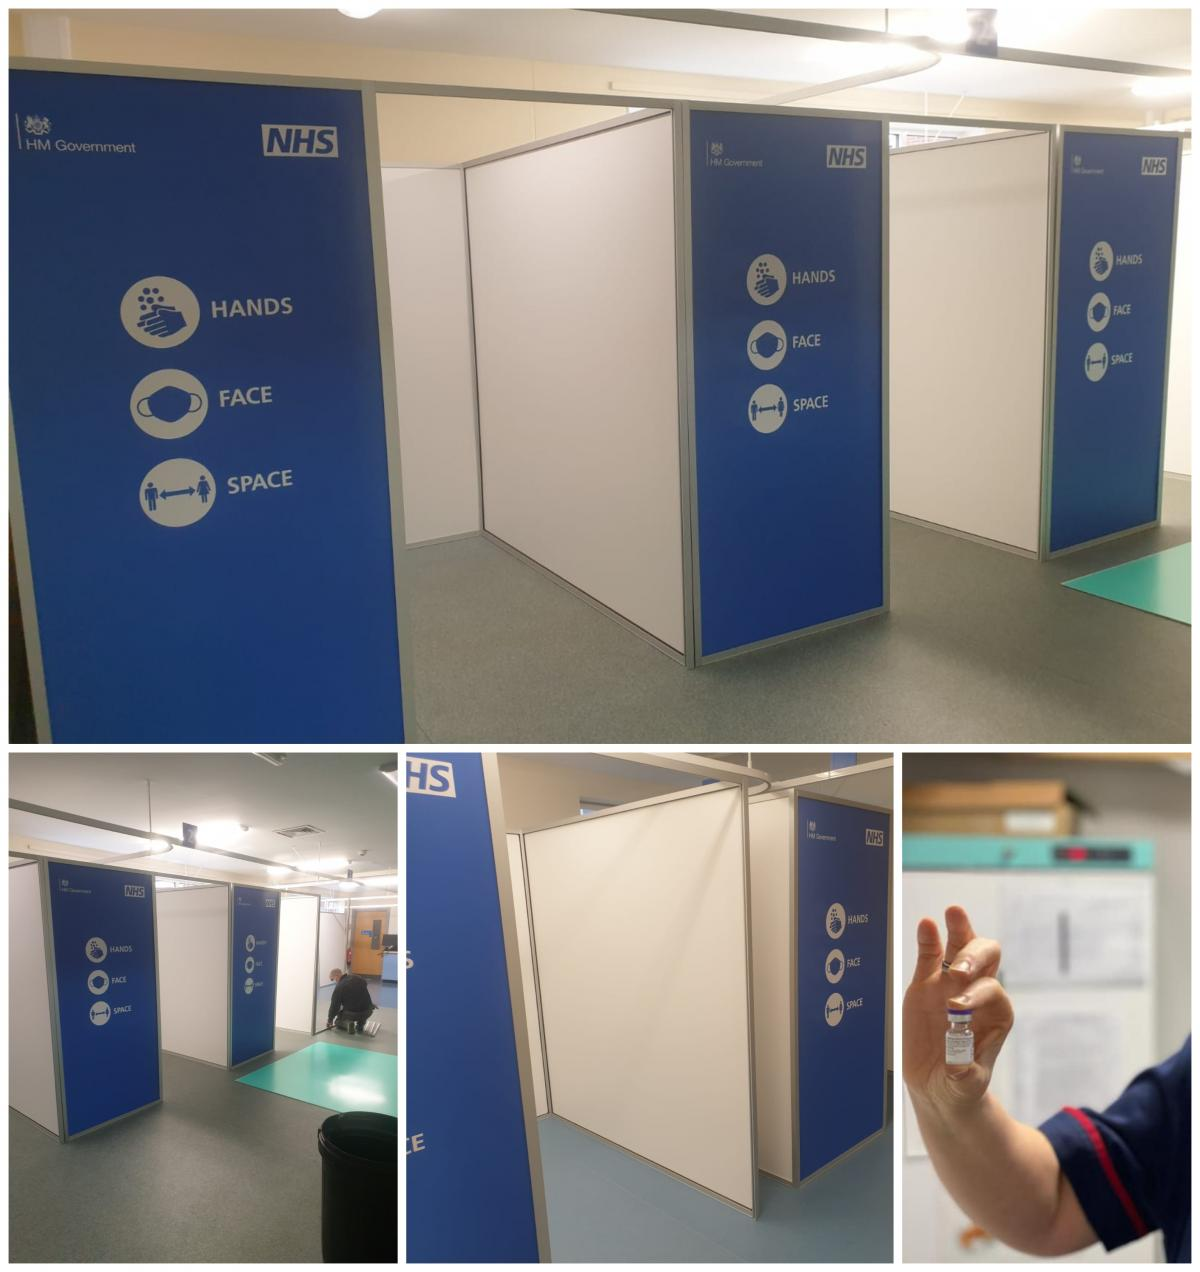 NW London NHS COVID Vaccination Booths